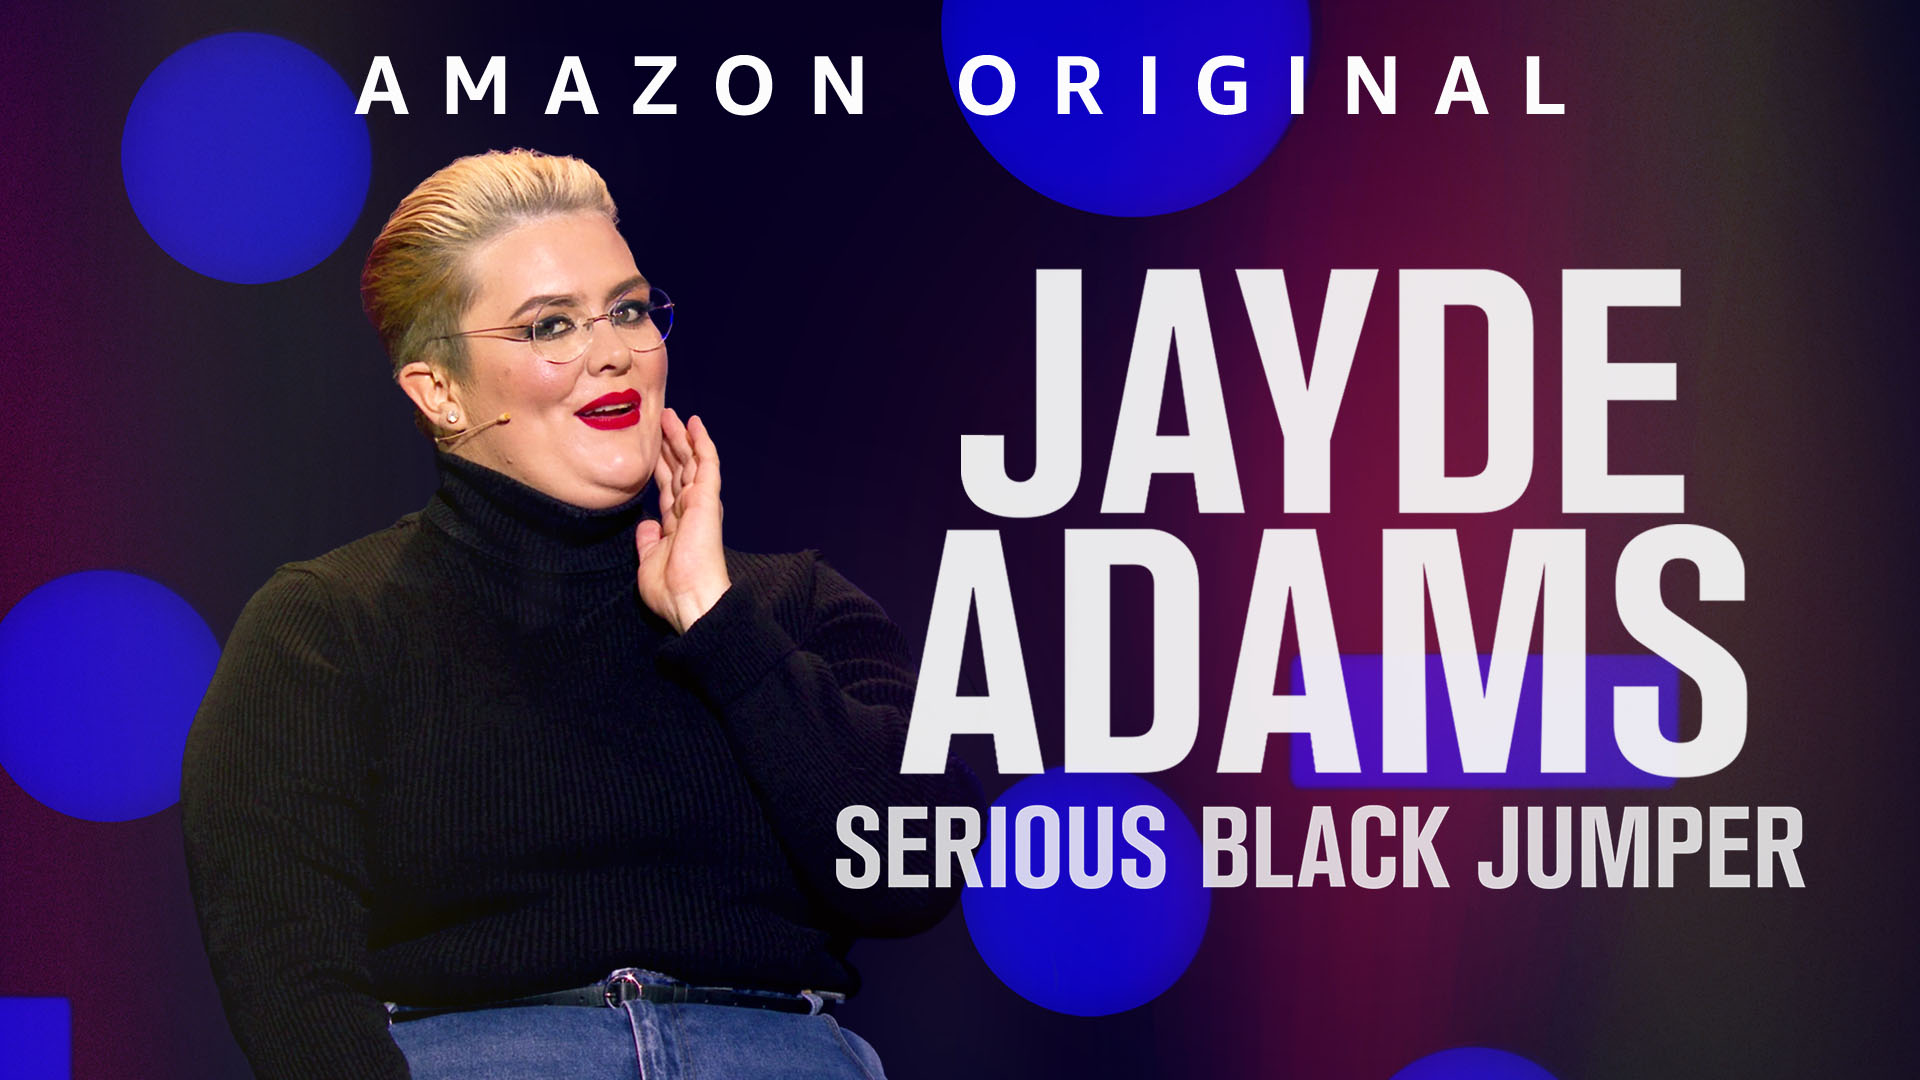 Jayde Adams: Serious Black Jumper